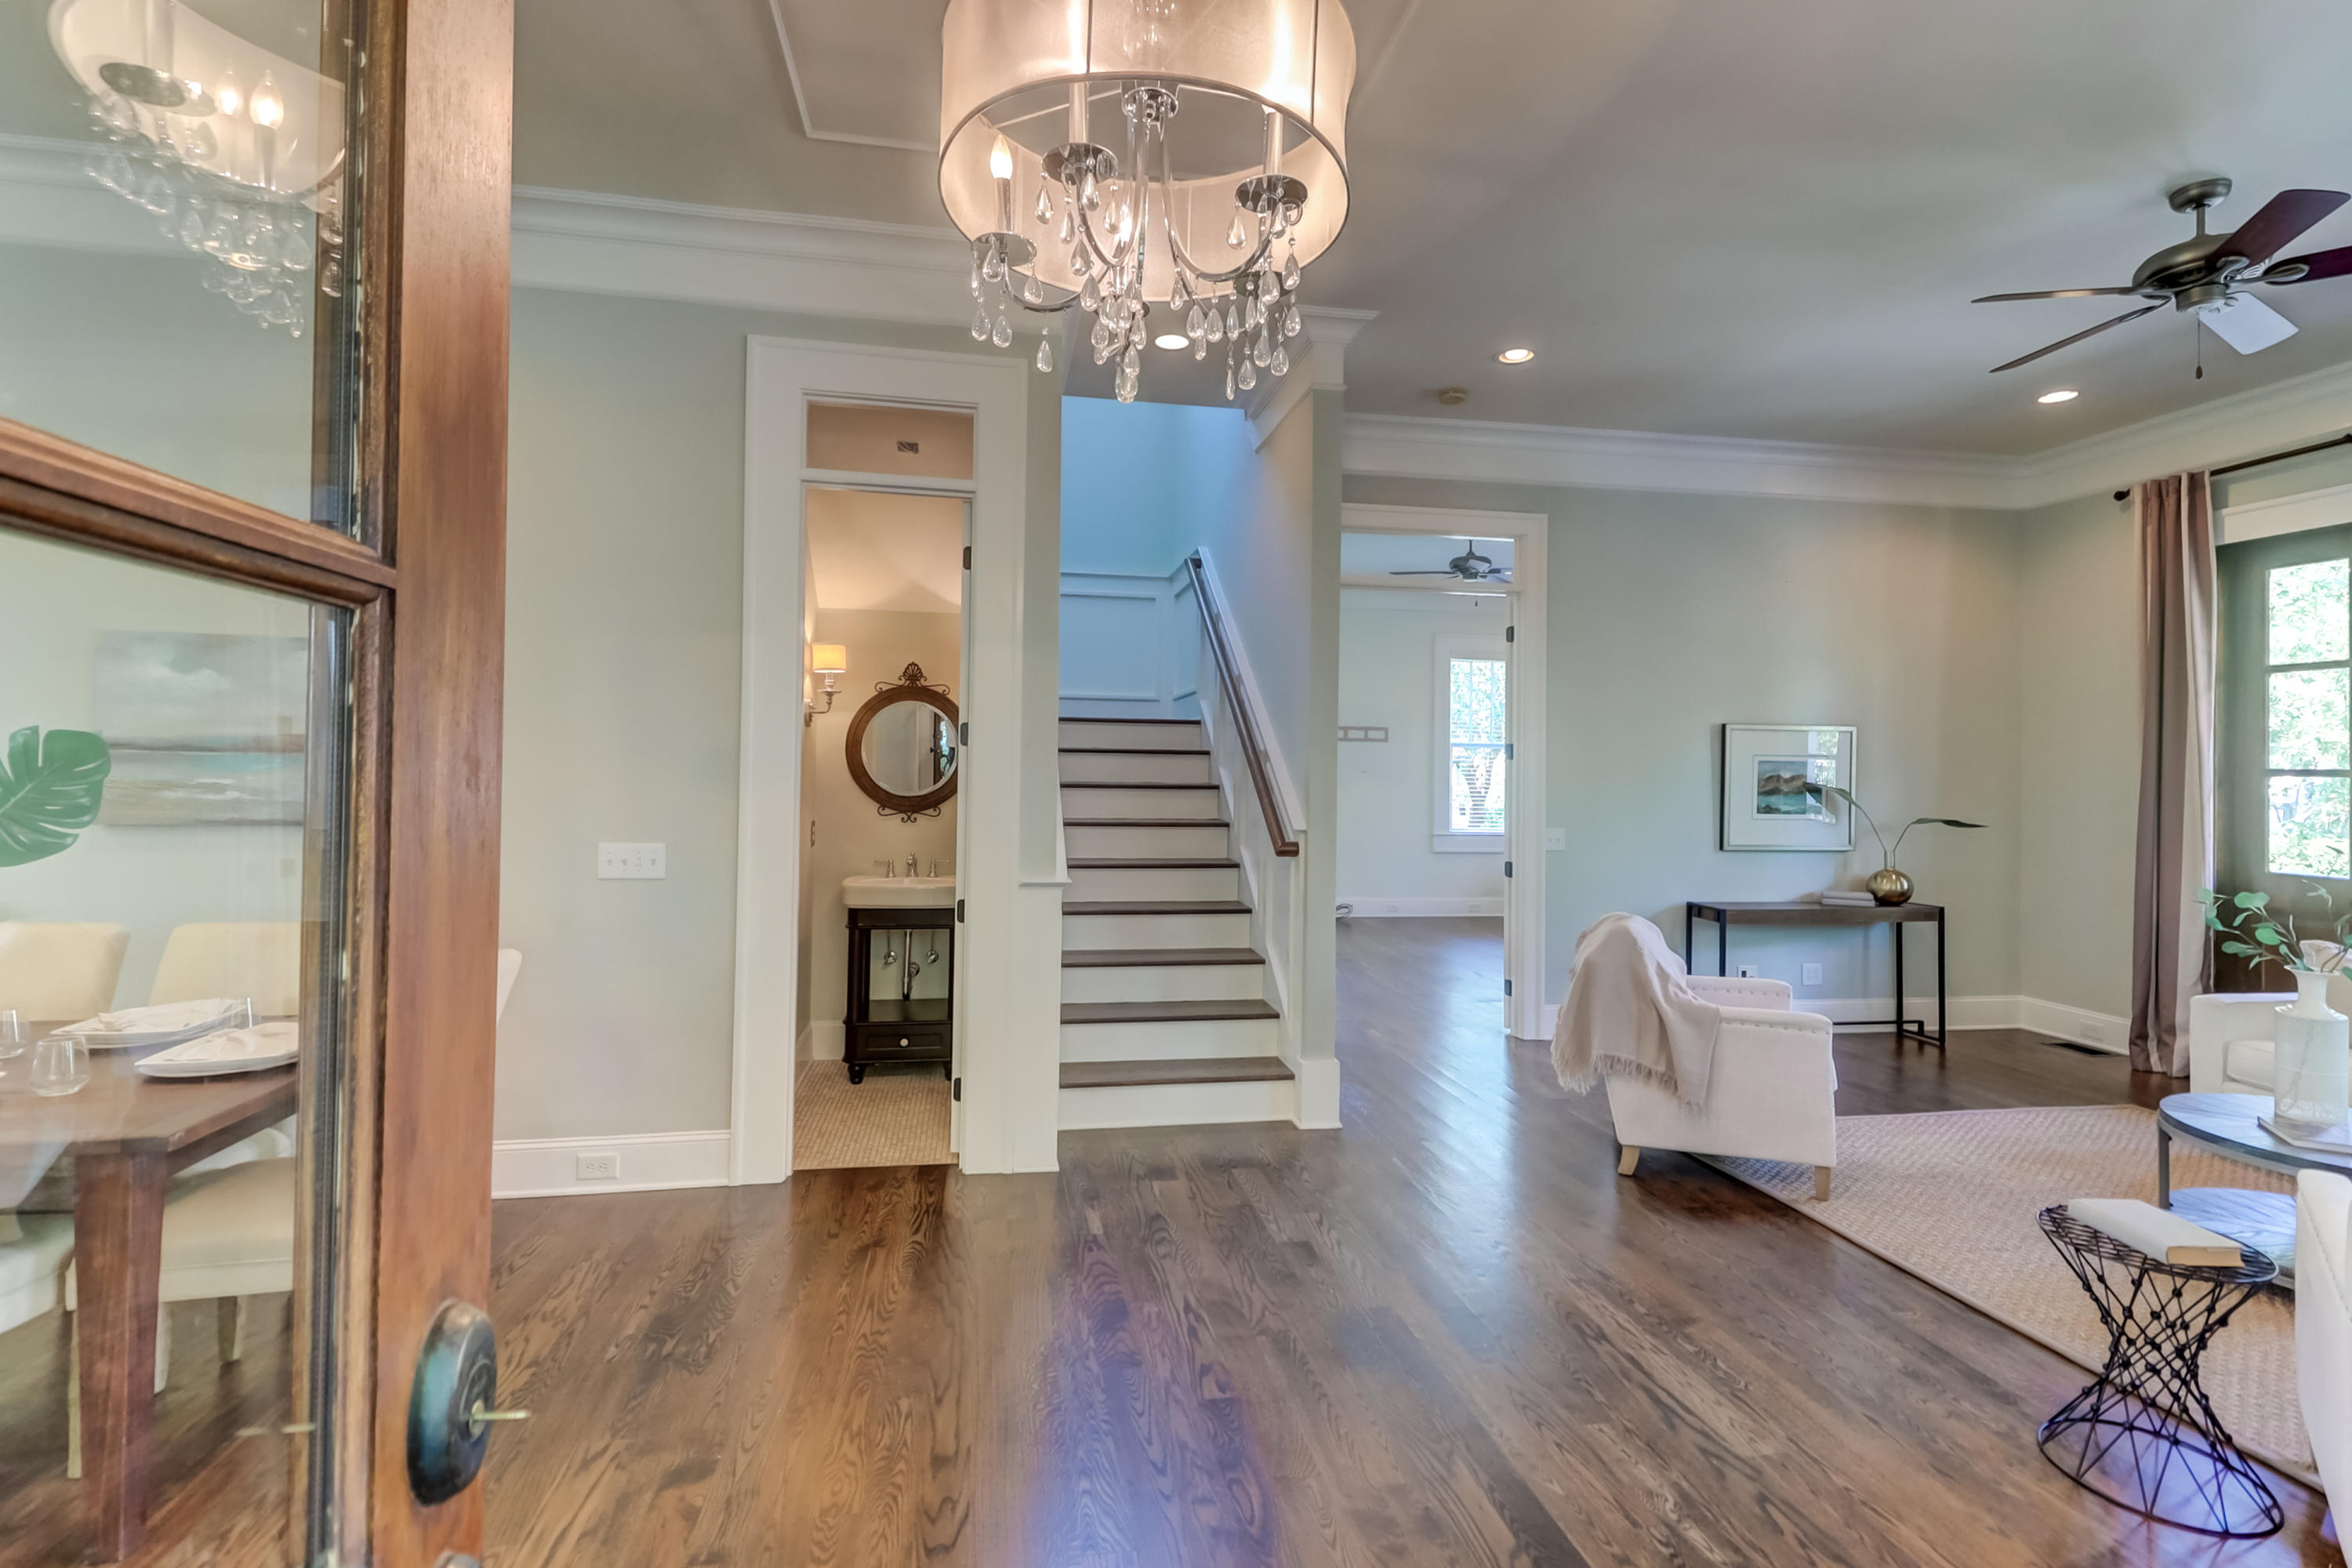 Belle Hall Homes For Sale - 713 Stucco, Mount Pleasant, SC - 42